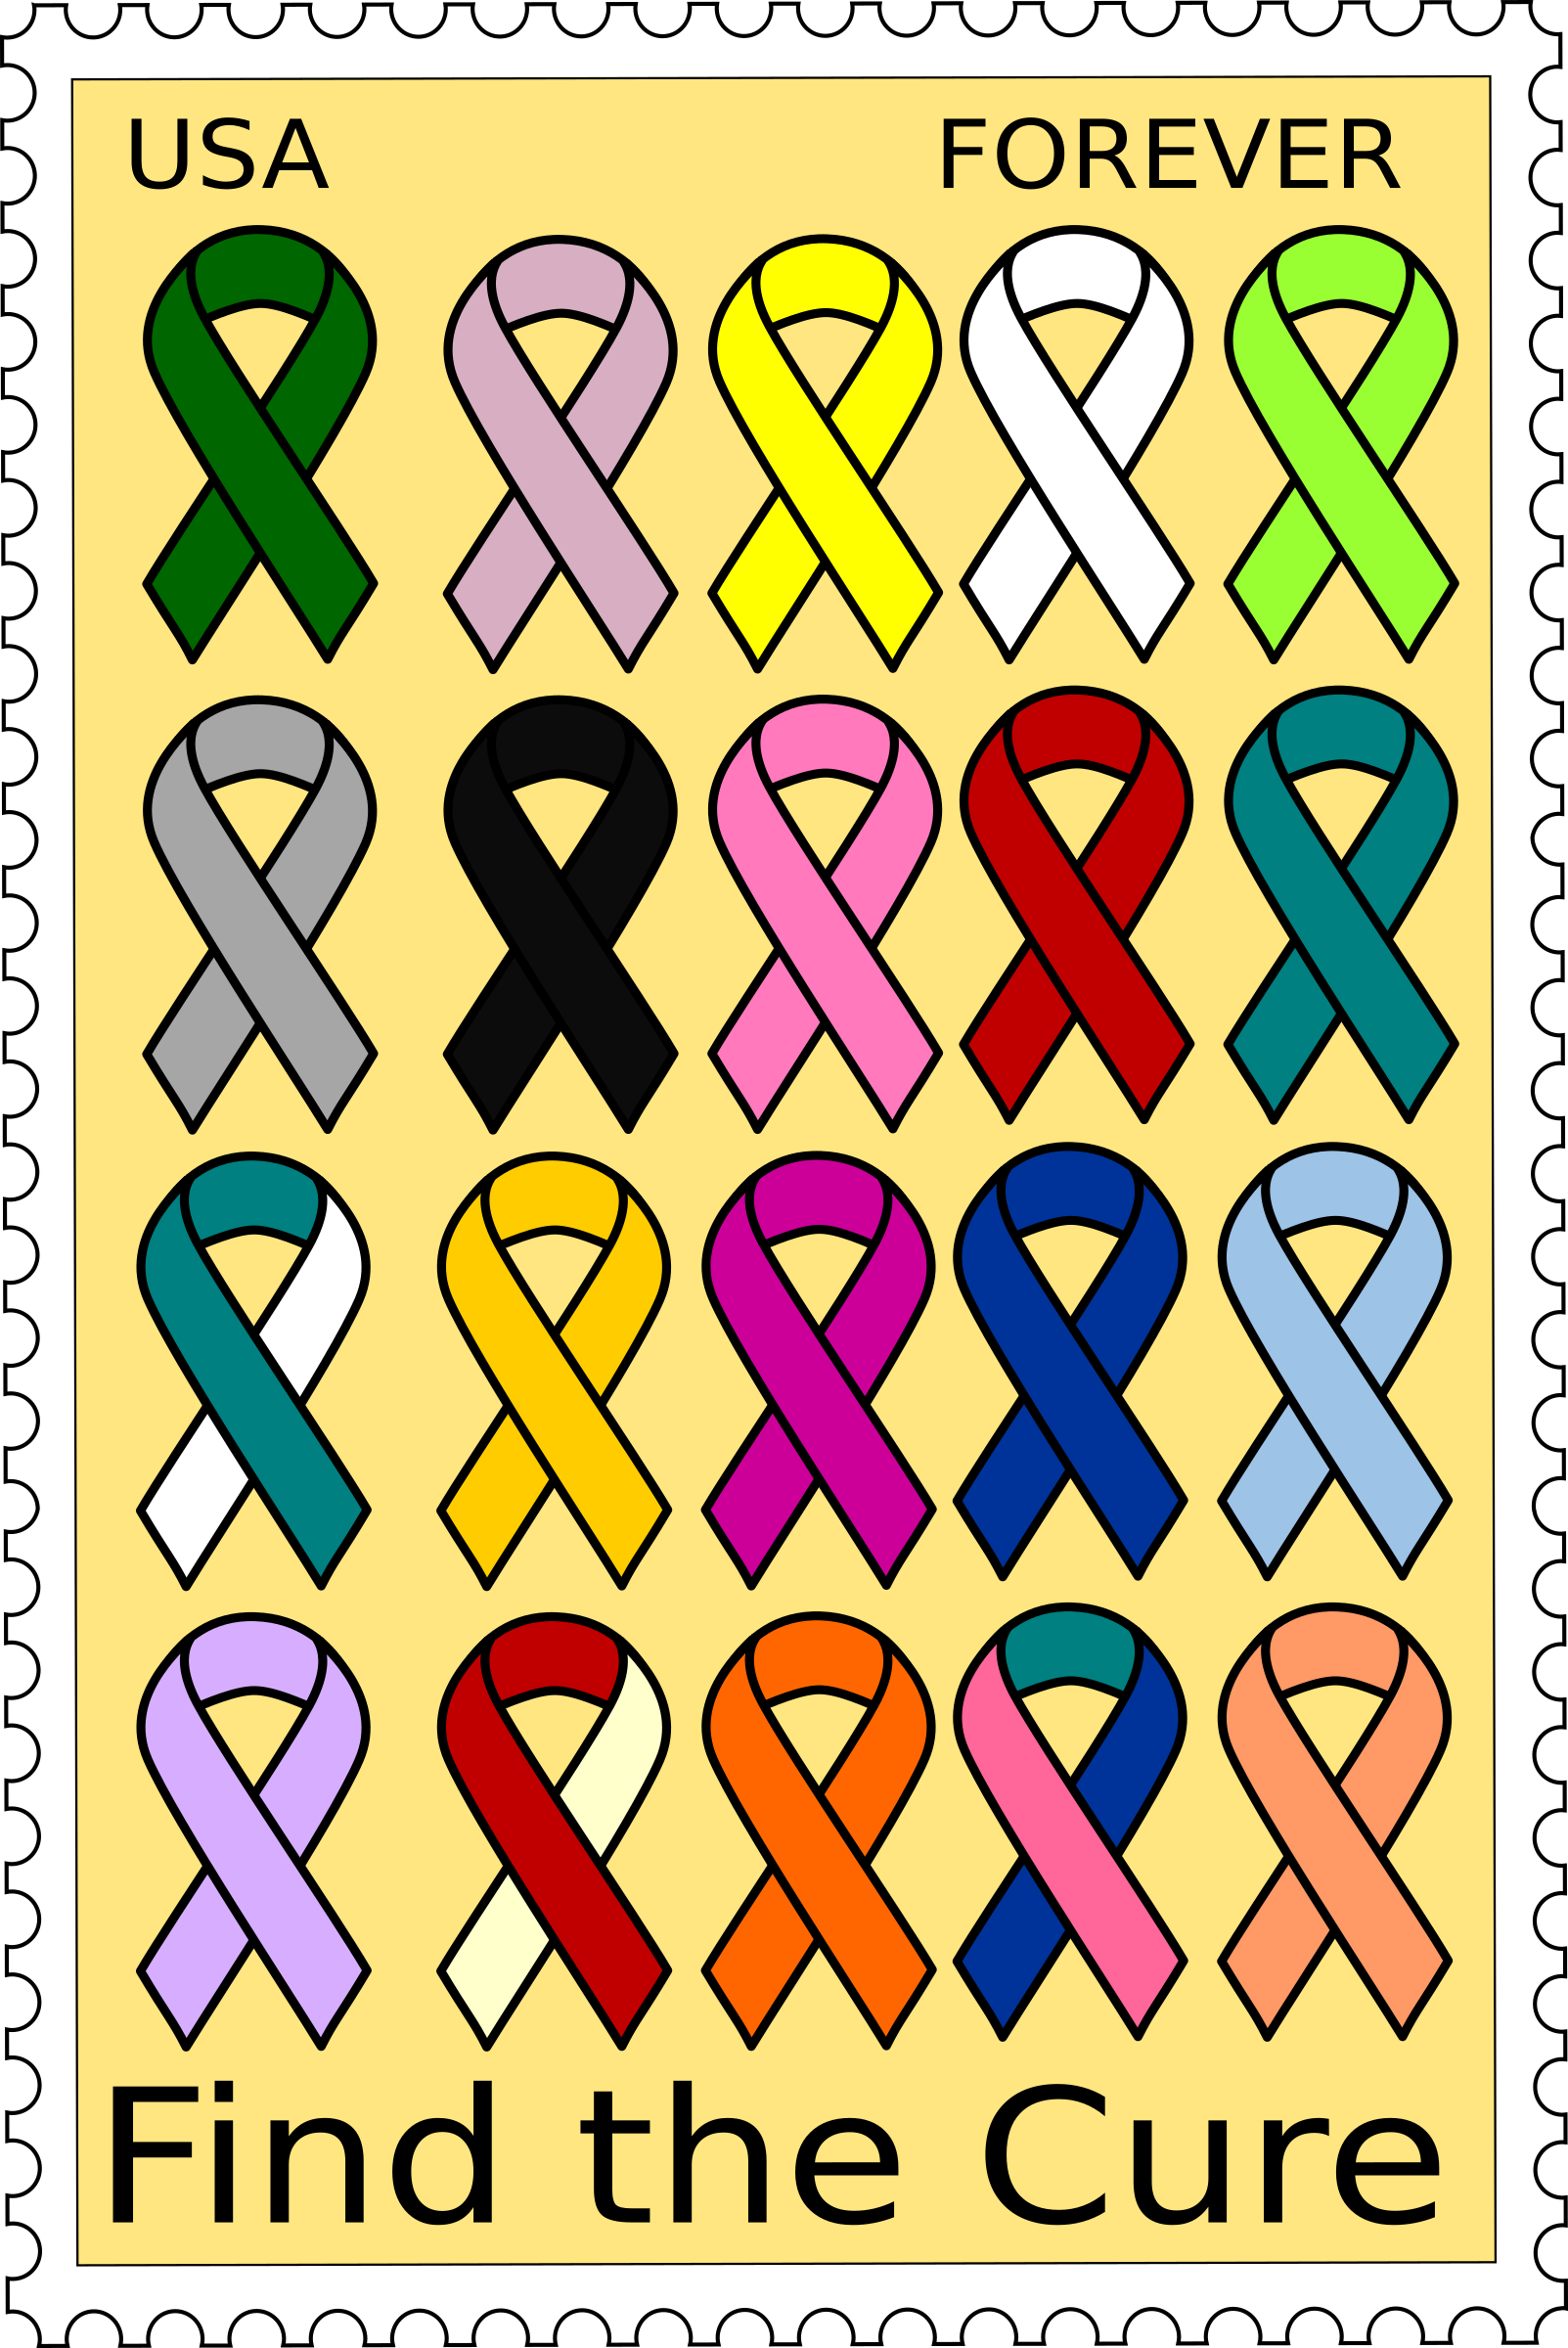 Cancer ribbons stamp by barnheartowl